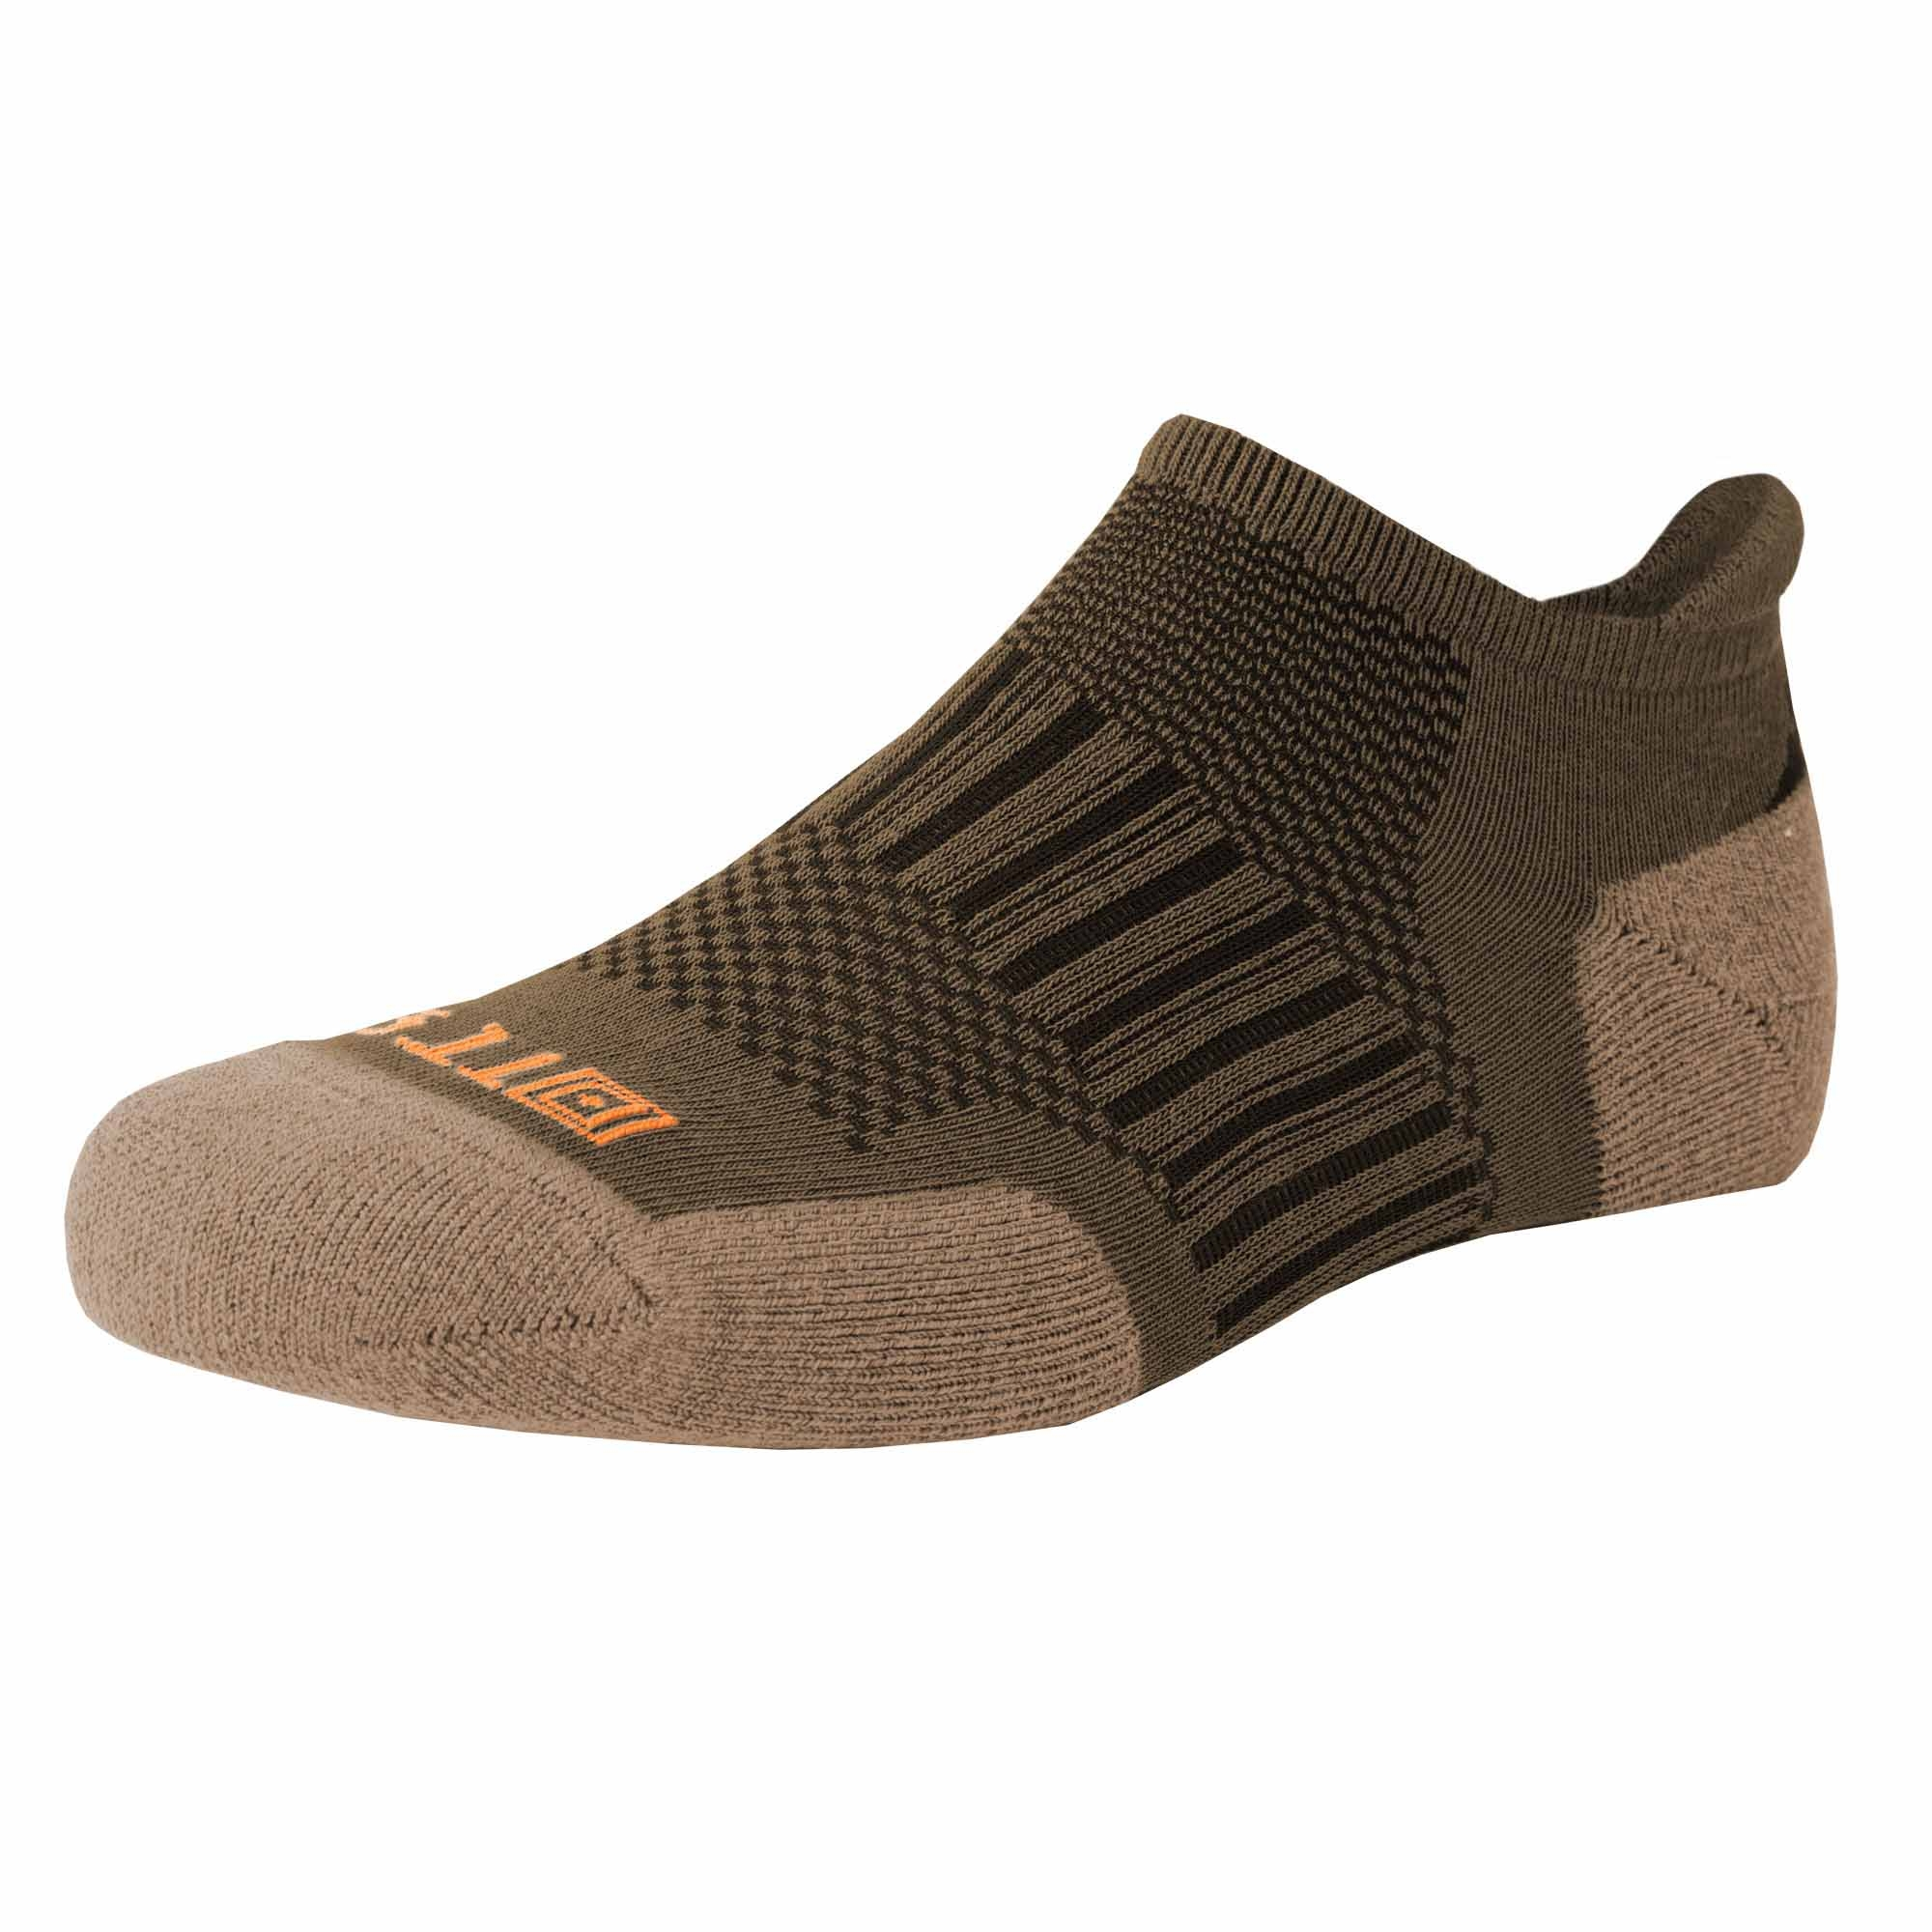 5.11 RECON® Ankle Sock from 5.11 Tactical (Brown;Khaki/Tan;Multi)